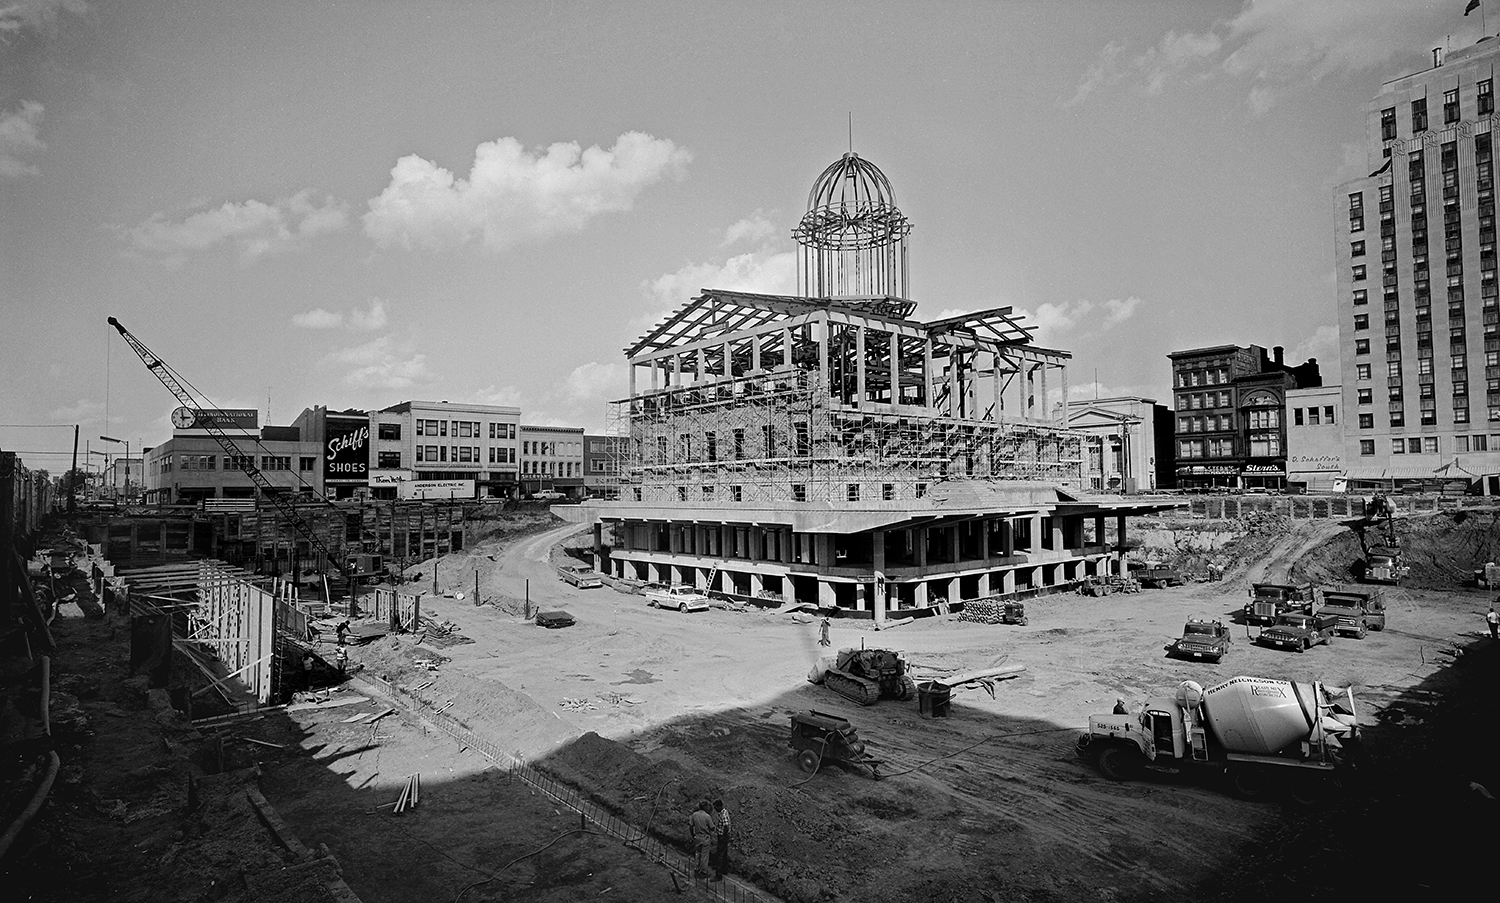 As part of a landmark restoration of the Old State Capitol, the building's exterior stone was removed, cataloged and stored while the interior was demolished. Once the building was removed, a two-level parking garage and offices for the Illinois State Historical Library were built before the building was re-constructed above it. Stone masons replaced the original stonework on the exterior of the new structure. Photographed Aug. 31, 1967. Bill Hagen/The State Journal-Register